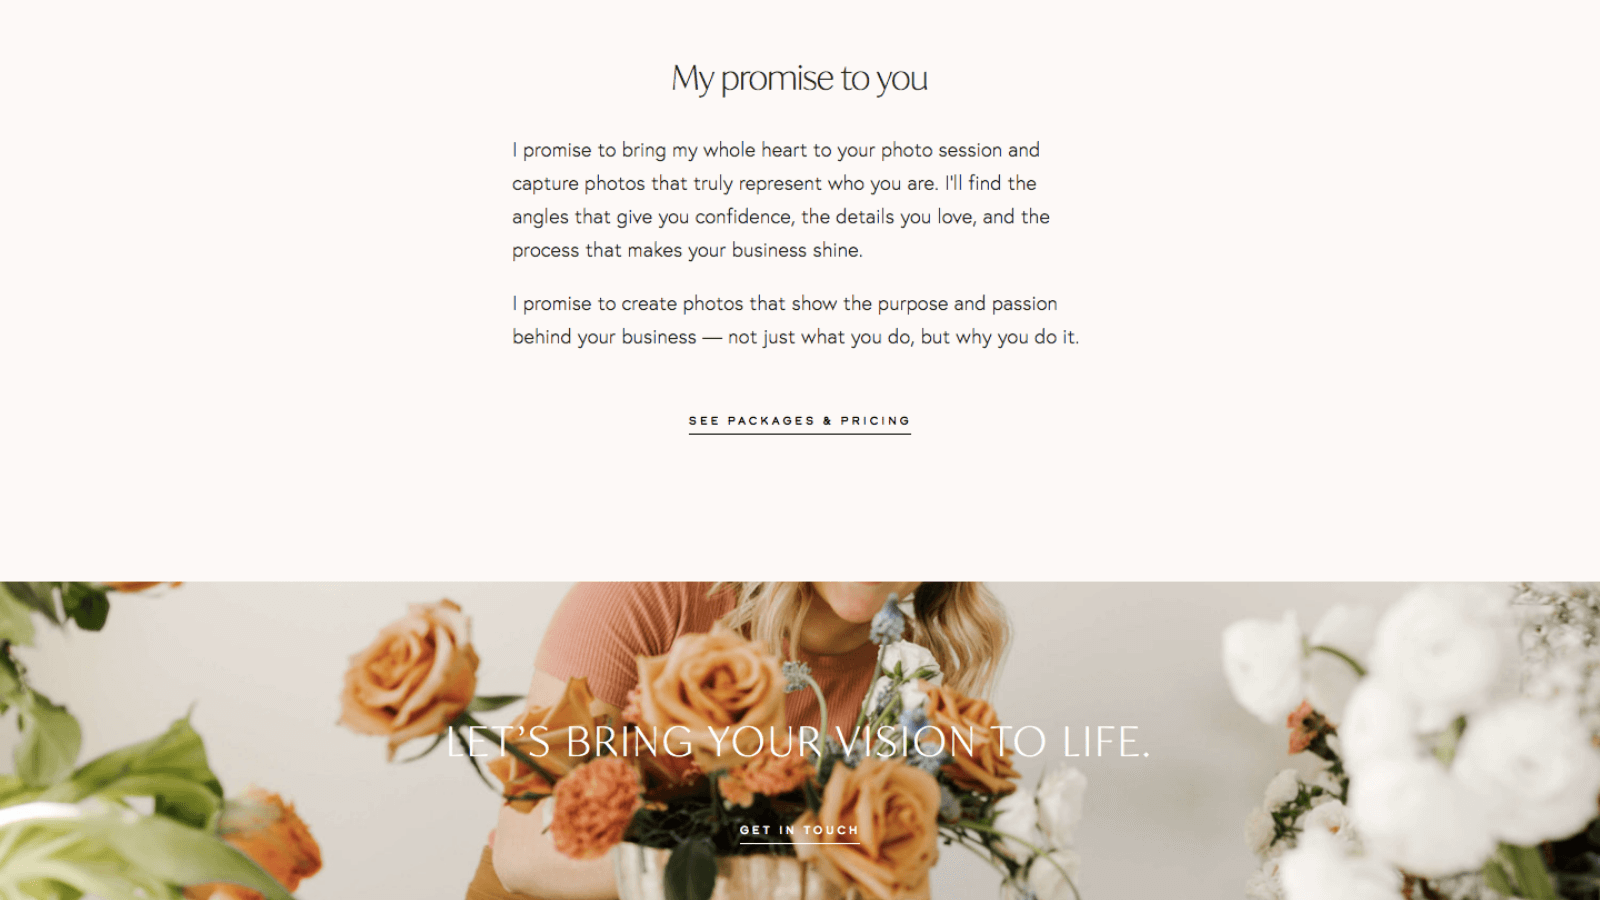 Brand promise on a branding photographer's About page; copywriting by Kelsey O'Halloran.